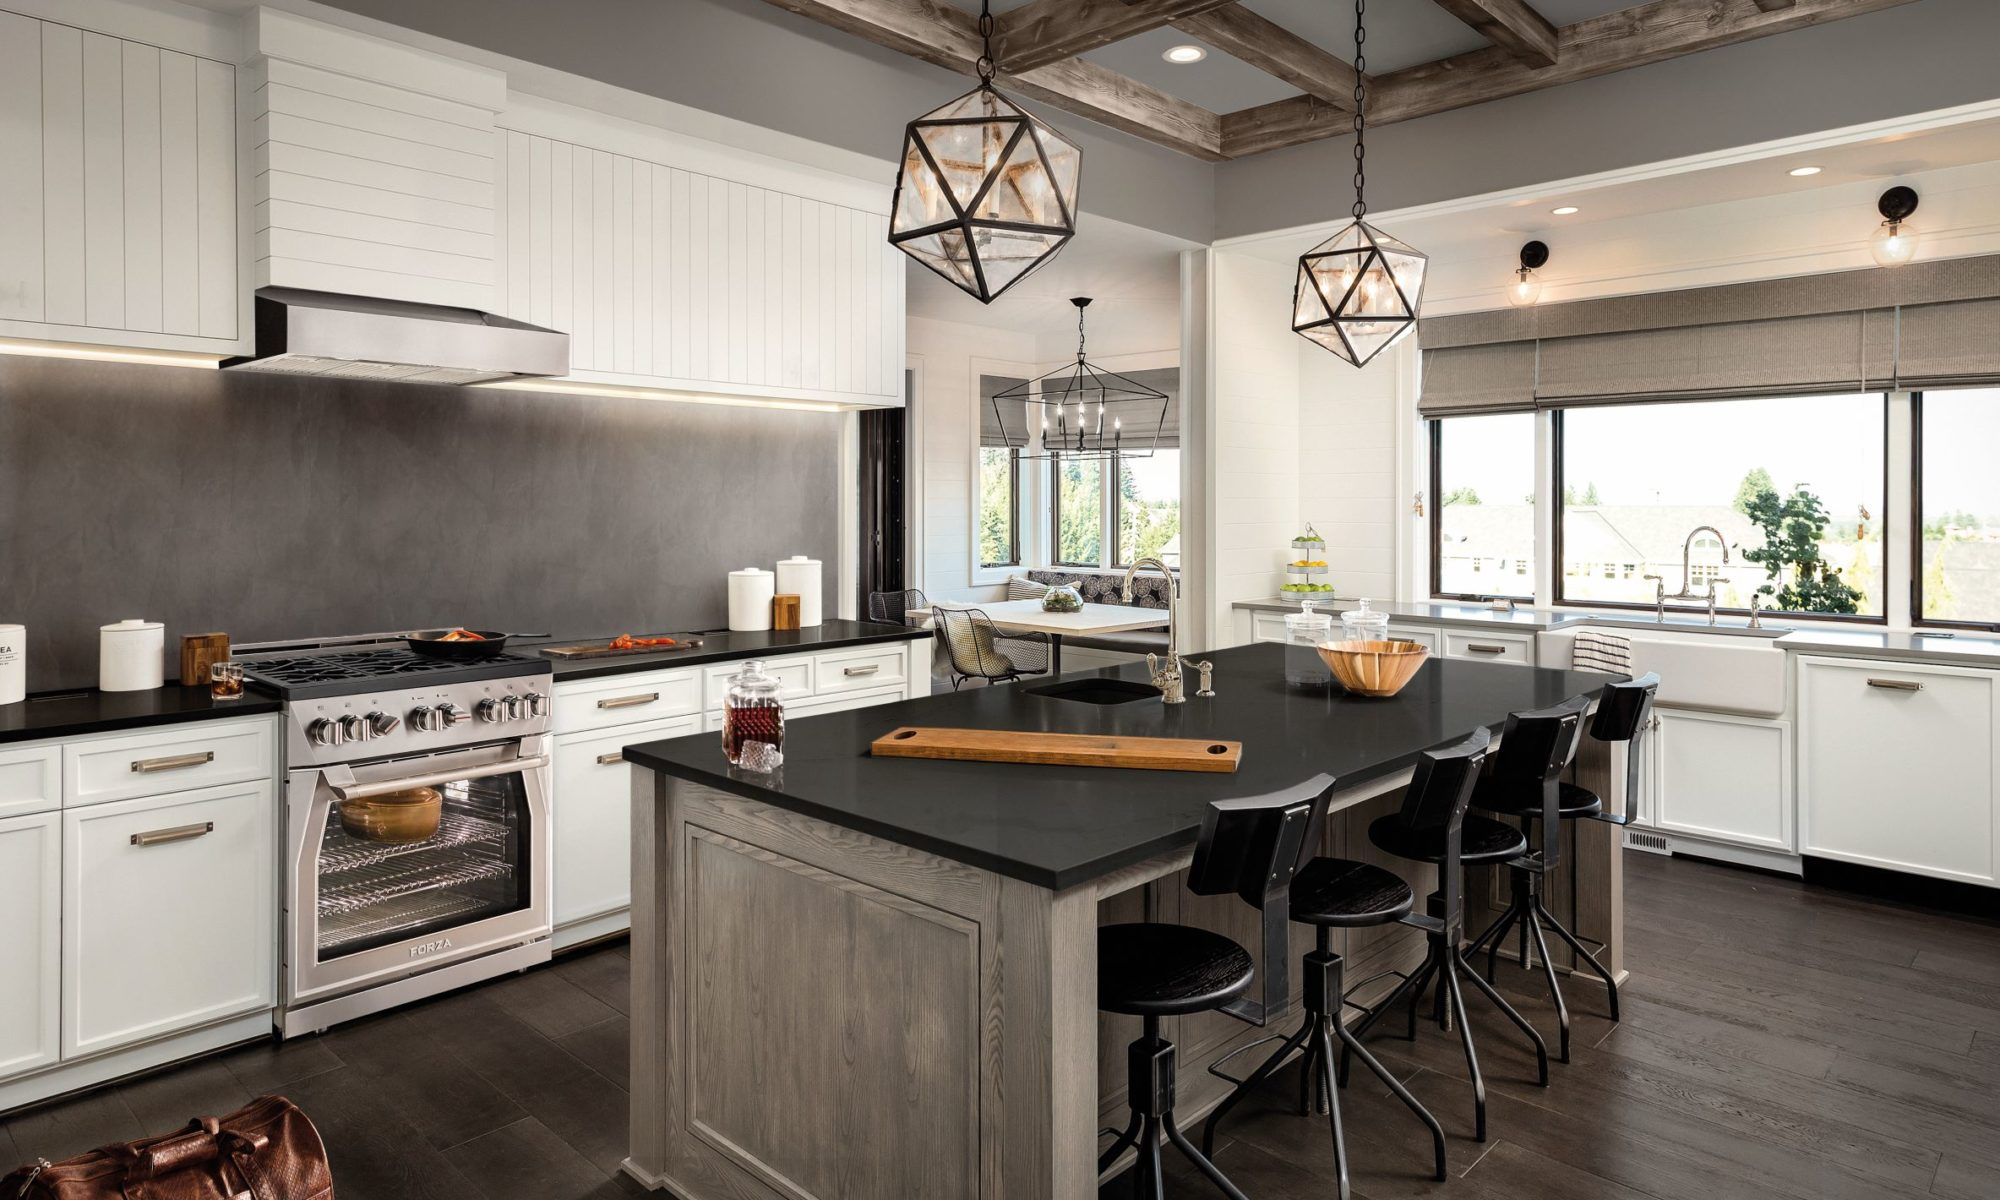 Forza Appliances with Italian Design in home